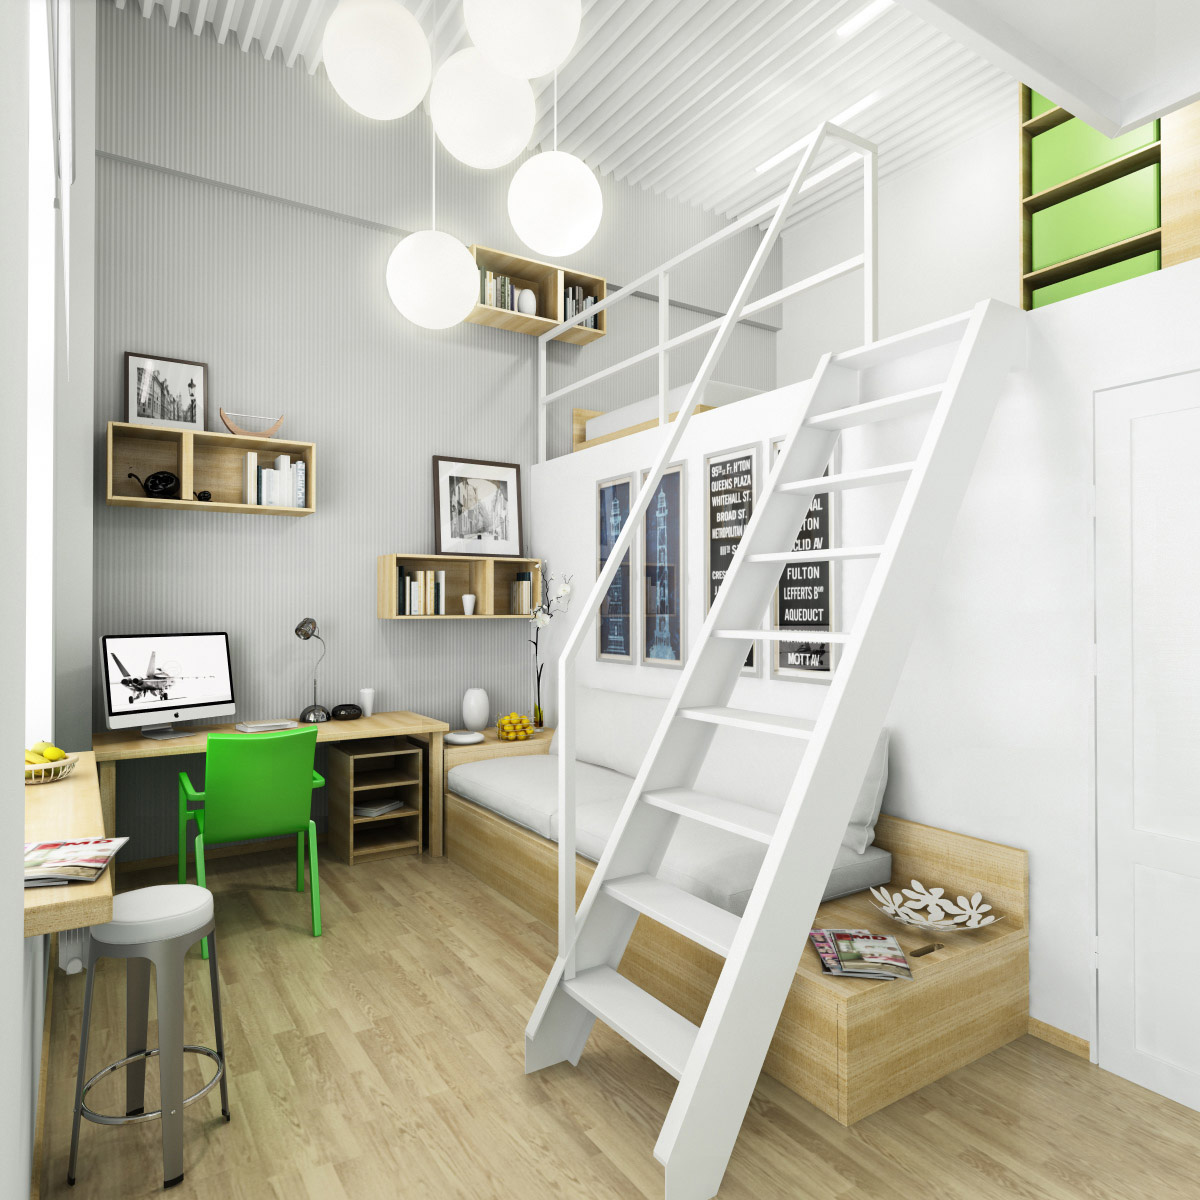 Teen workspaces home design - Mezzanine bedlamp ...